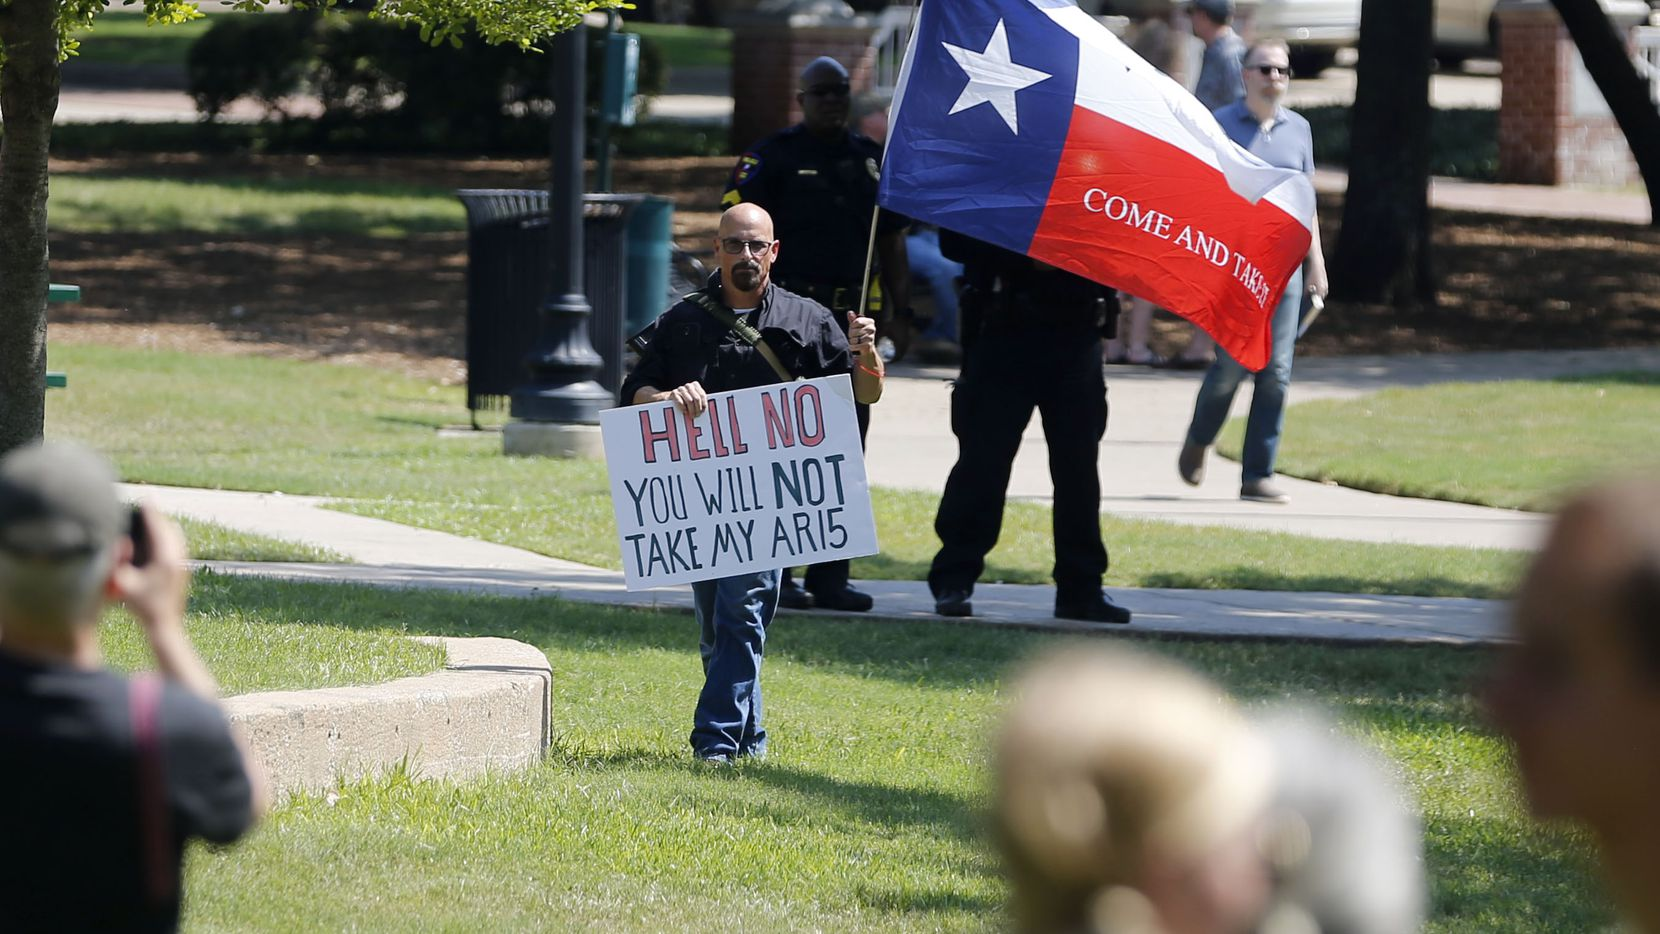 "John Swicegood holds up a sign that reads ""Hell no you will not take my AR15,"" at a campaign event for Democratic Presidential candidate Beto O'Rourke at Haggard Park in Plano, Texas, on Sunday, September 15, 2019."